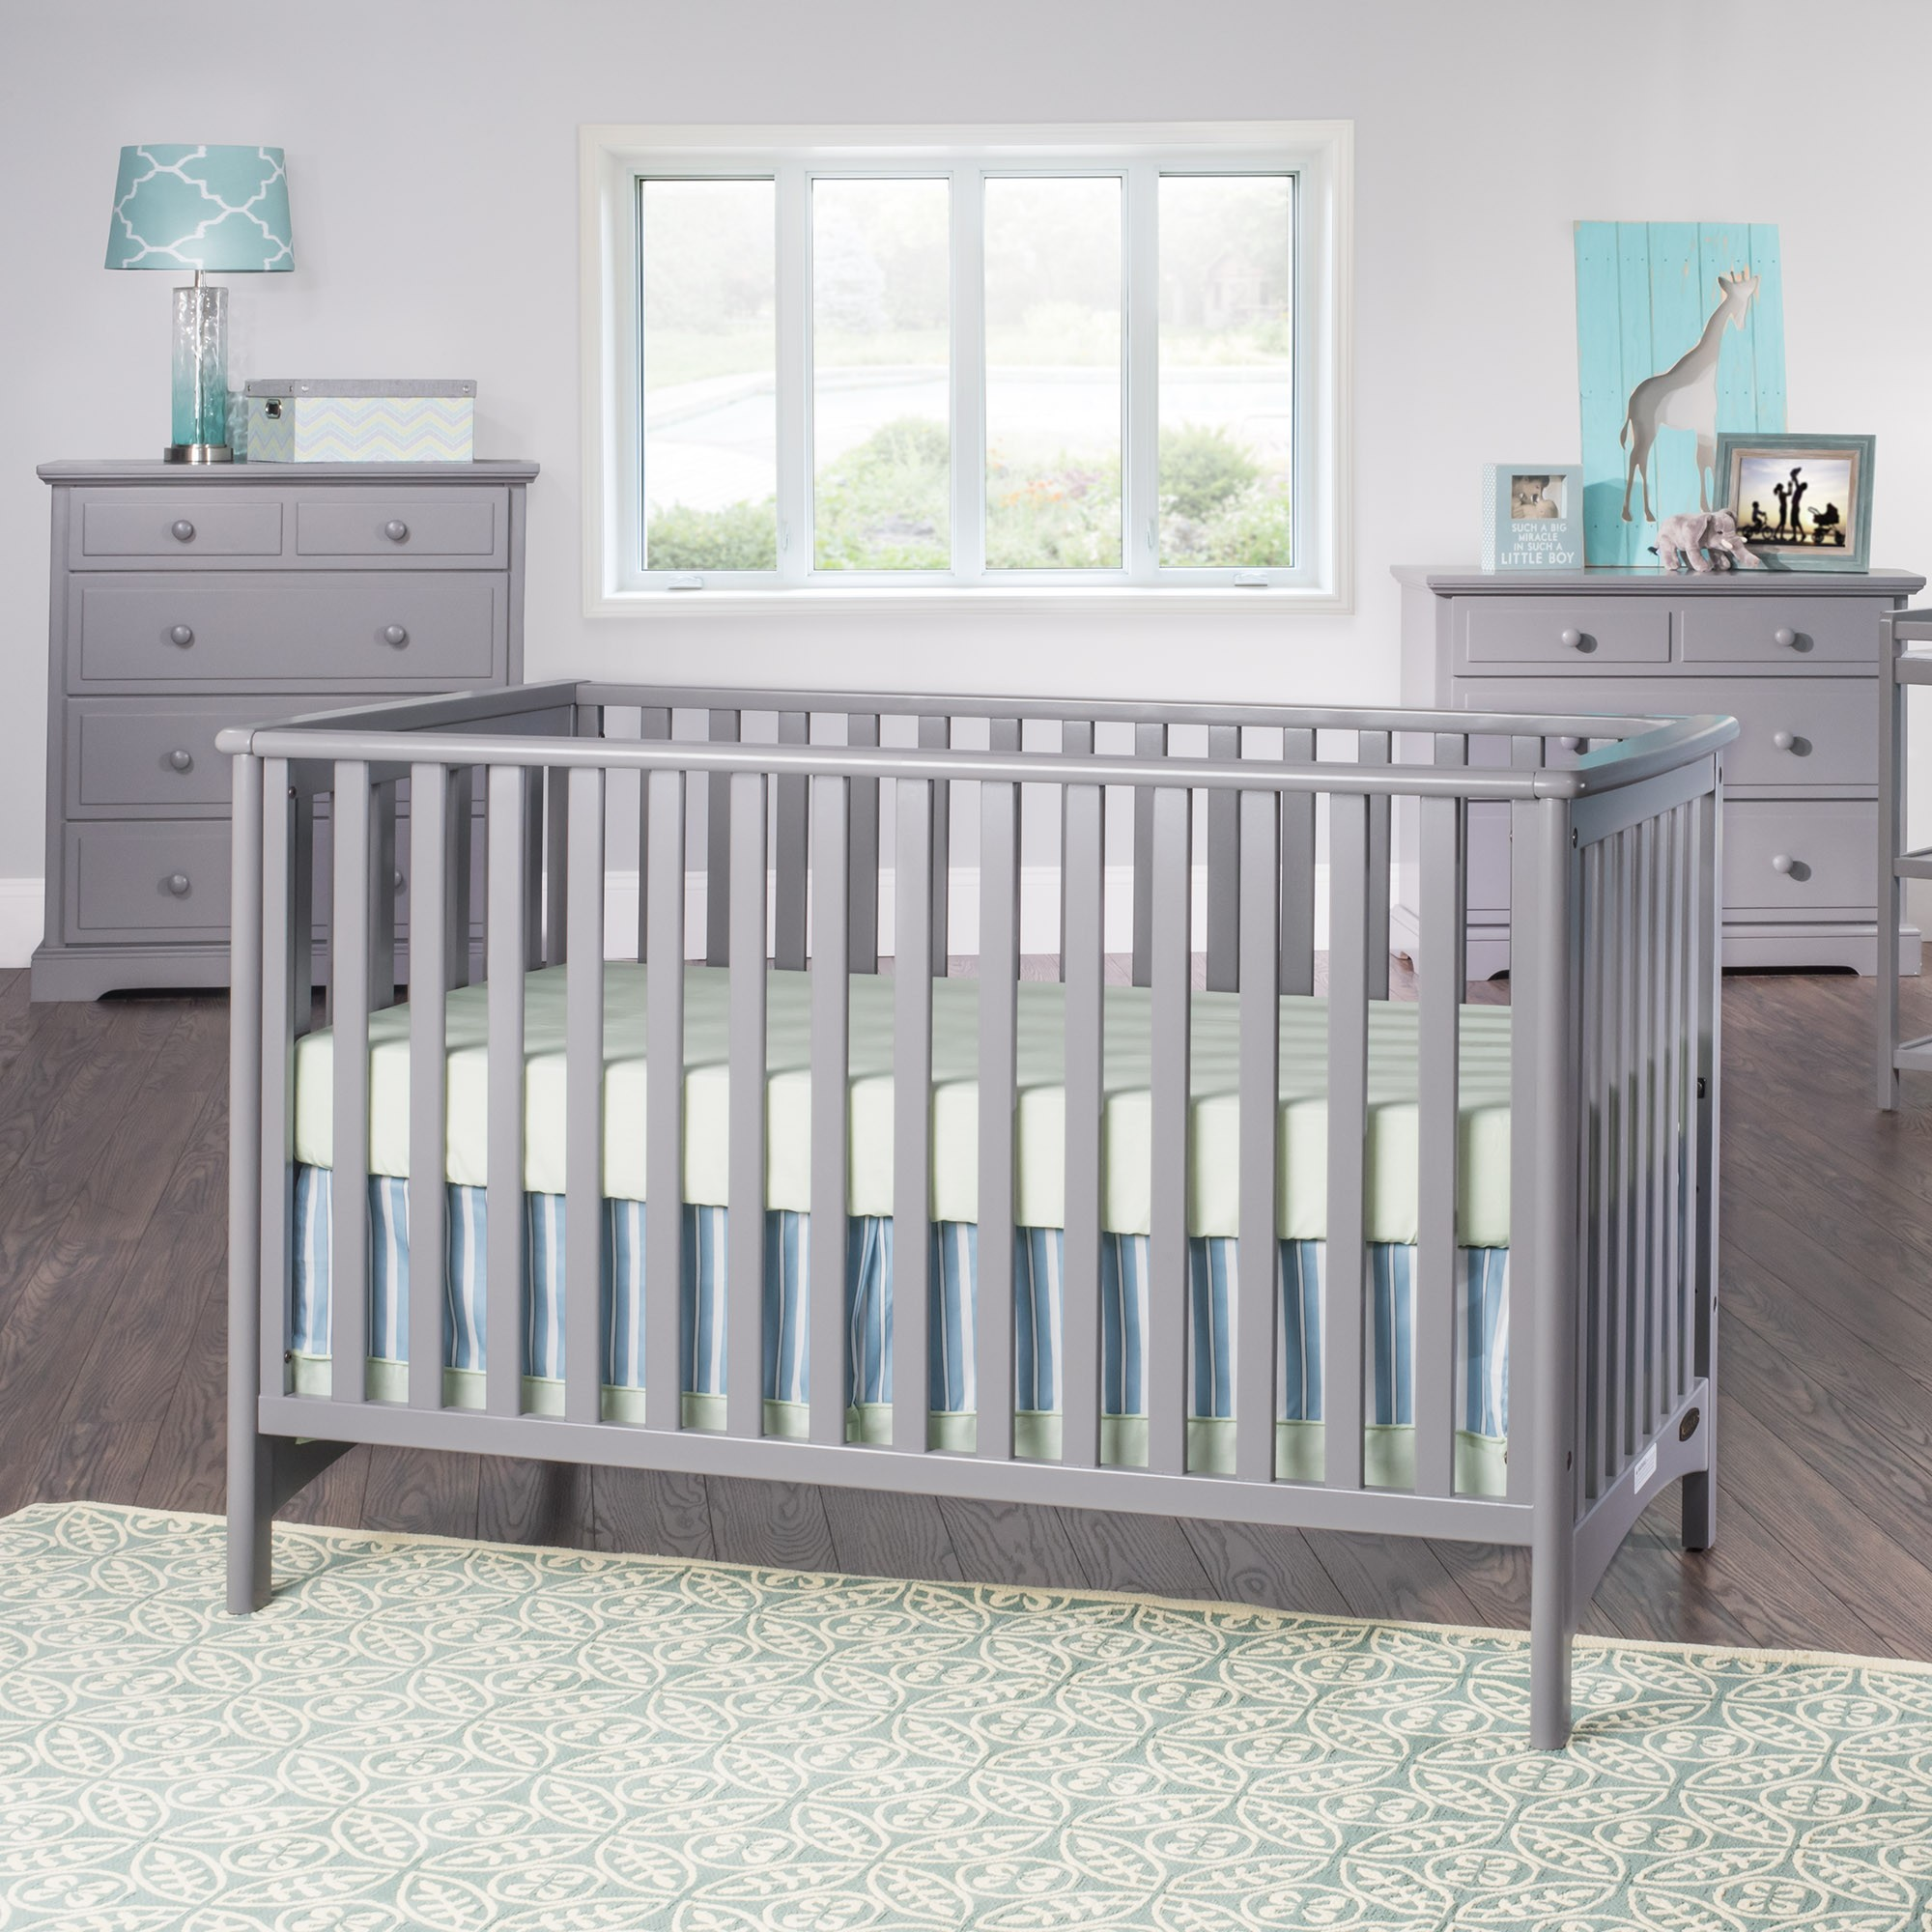 cribs gray overstock lifetime camden craft shipping home free crib child today garden convertible product in